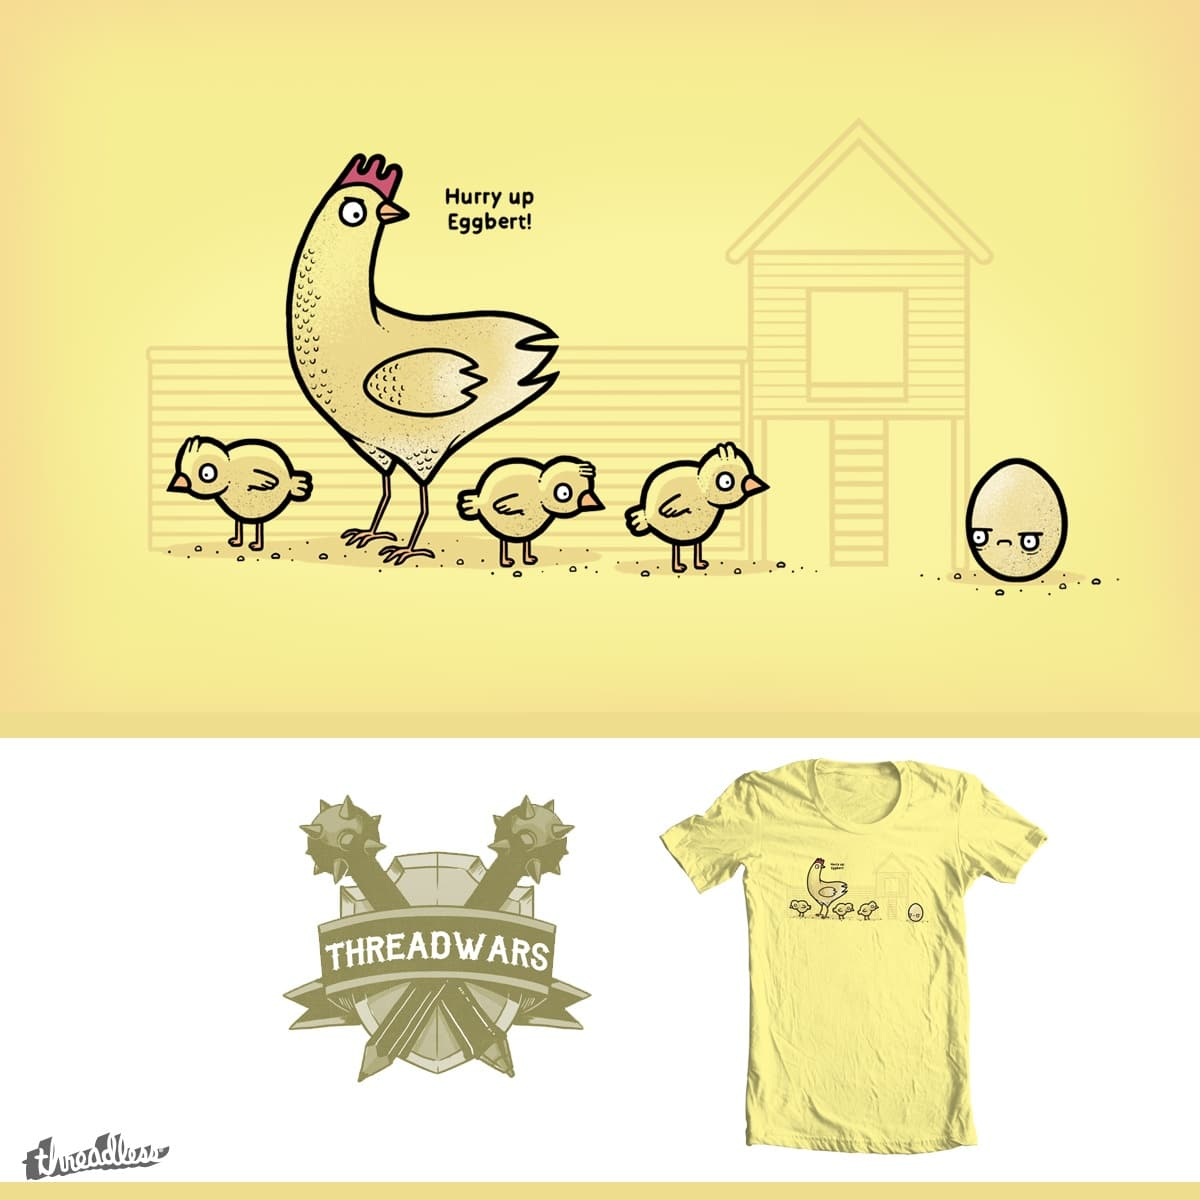 Hurry up! by randyotter3000 on Threadless